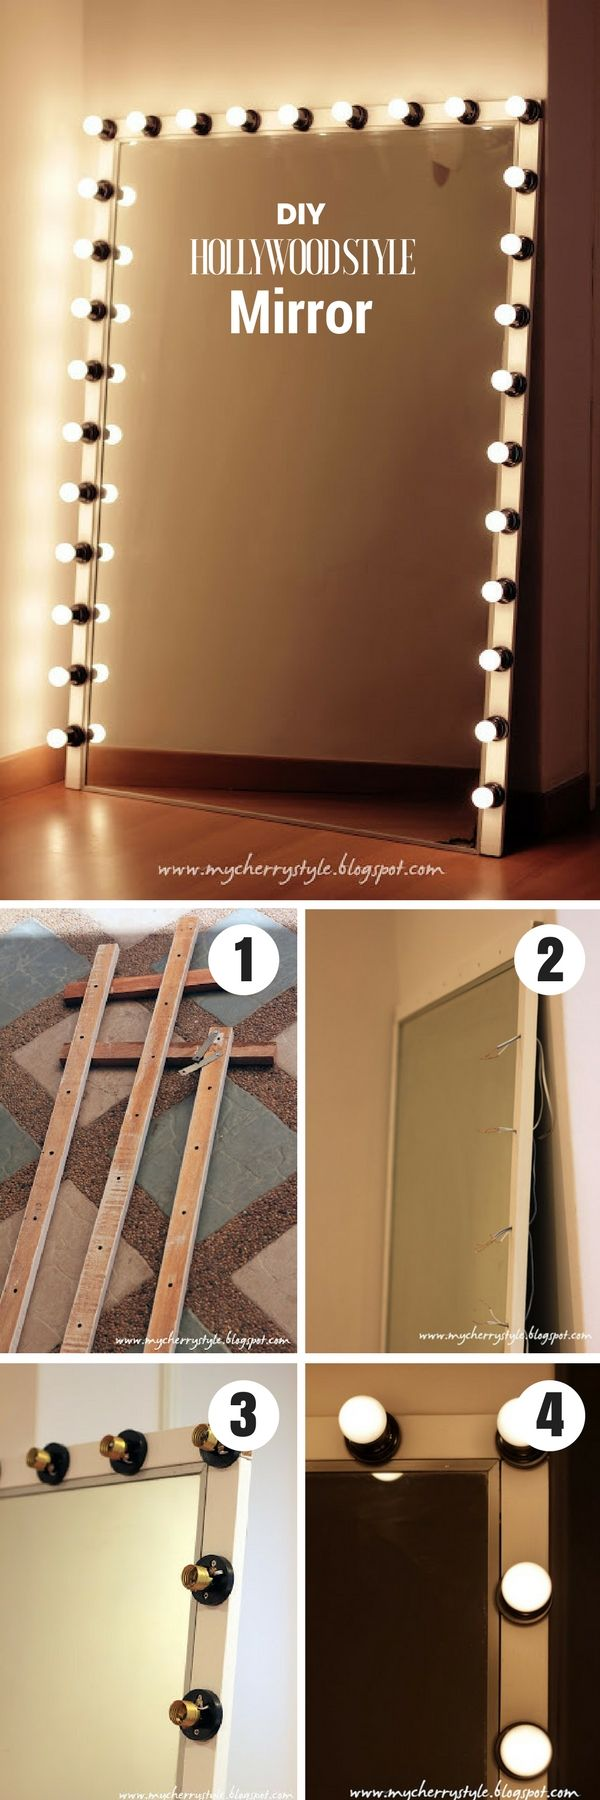 Hollywood Style Vanity Lights : Best 25+ Hollywood bedroom ideas only on Pinterest Hollywood vanity mirror, Glam bedroom and ...